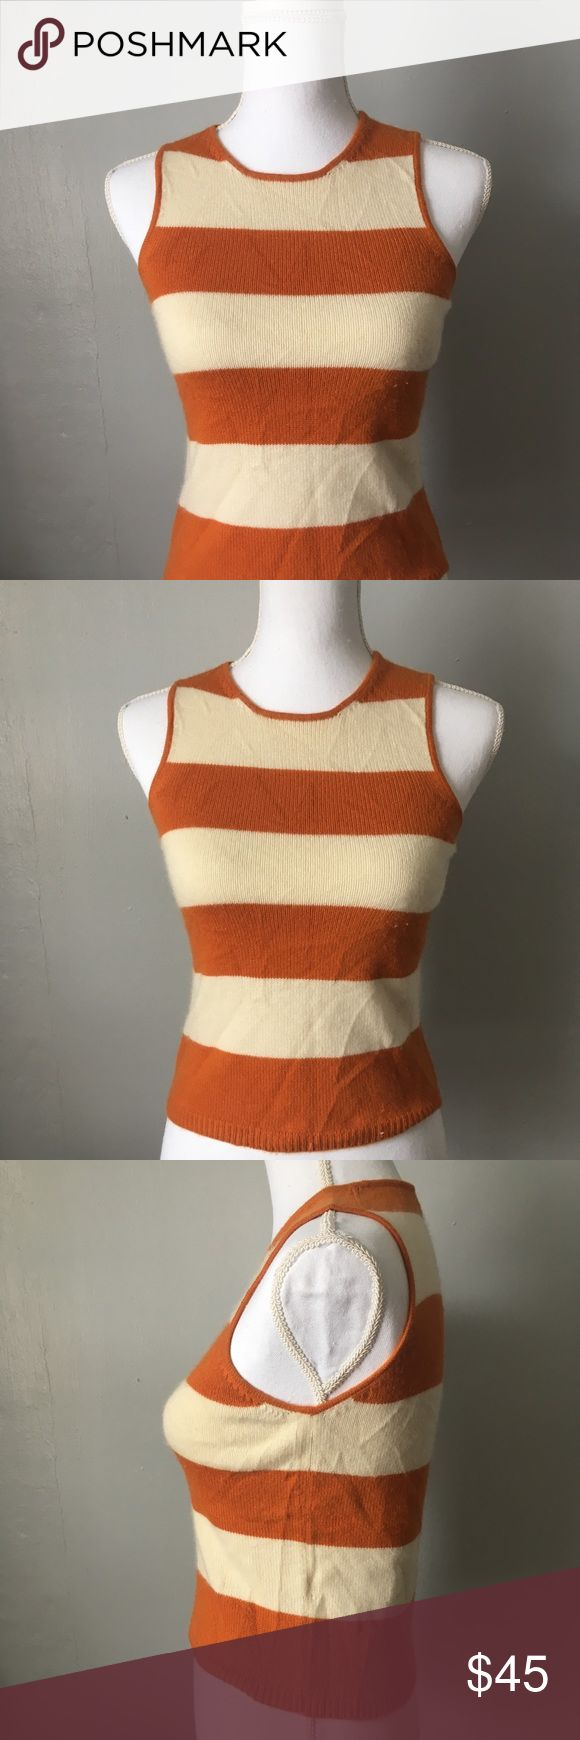 """KORS Michael Kors 100% Cashmere Striped Shell This bright orange and cream rugby striped shell by Kors Michael Kors is the ultimate in preppy buy glamorous. 100% cashmere wraps you in cloud like softness while the stripes say, """"I'm ready to play!""""  Size small. Lots of stretch. 14"""" pit to pit flat without being stretched. Perfect paired with a darkwash denim jacket and your favorite Neutral shorts for spring! Crewneck. Size small. KORS Michael Kors Sweaters Crew & Scoop Necks"""